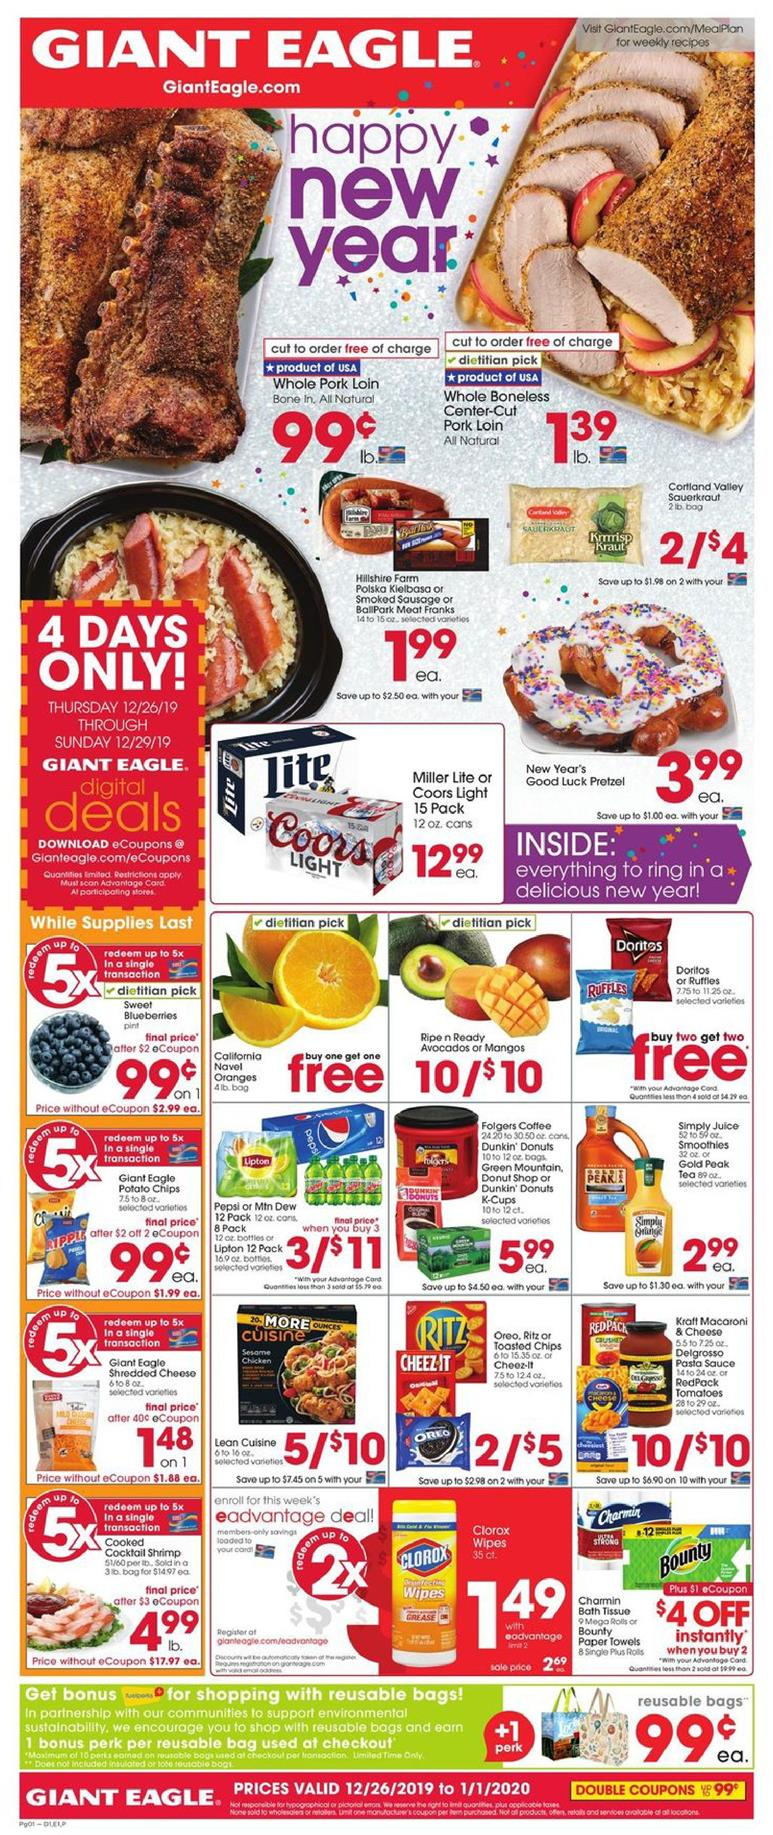 giant eagle new year ad valid from dec 26 to jan 1